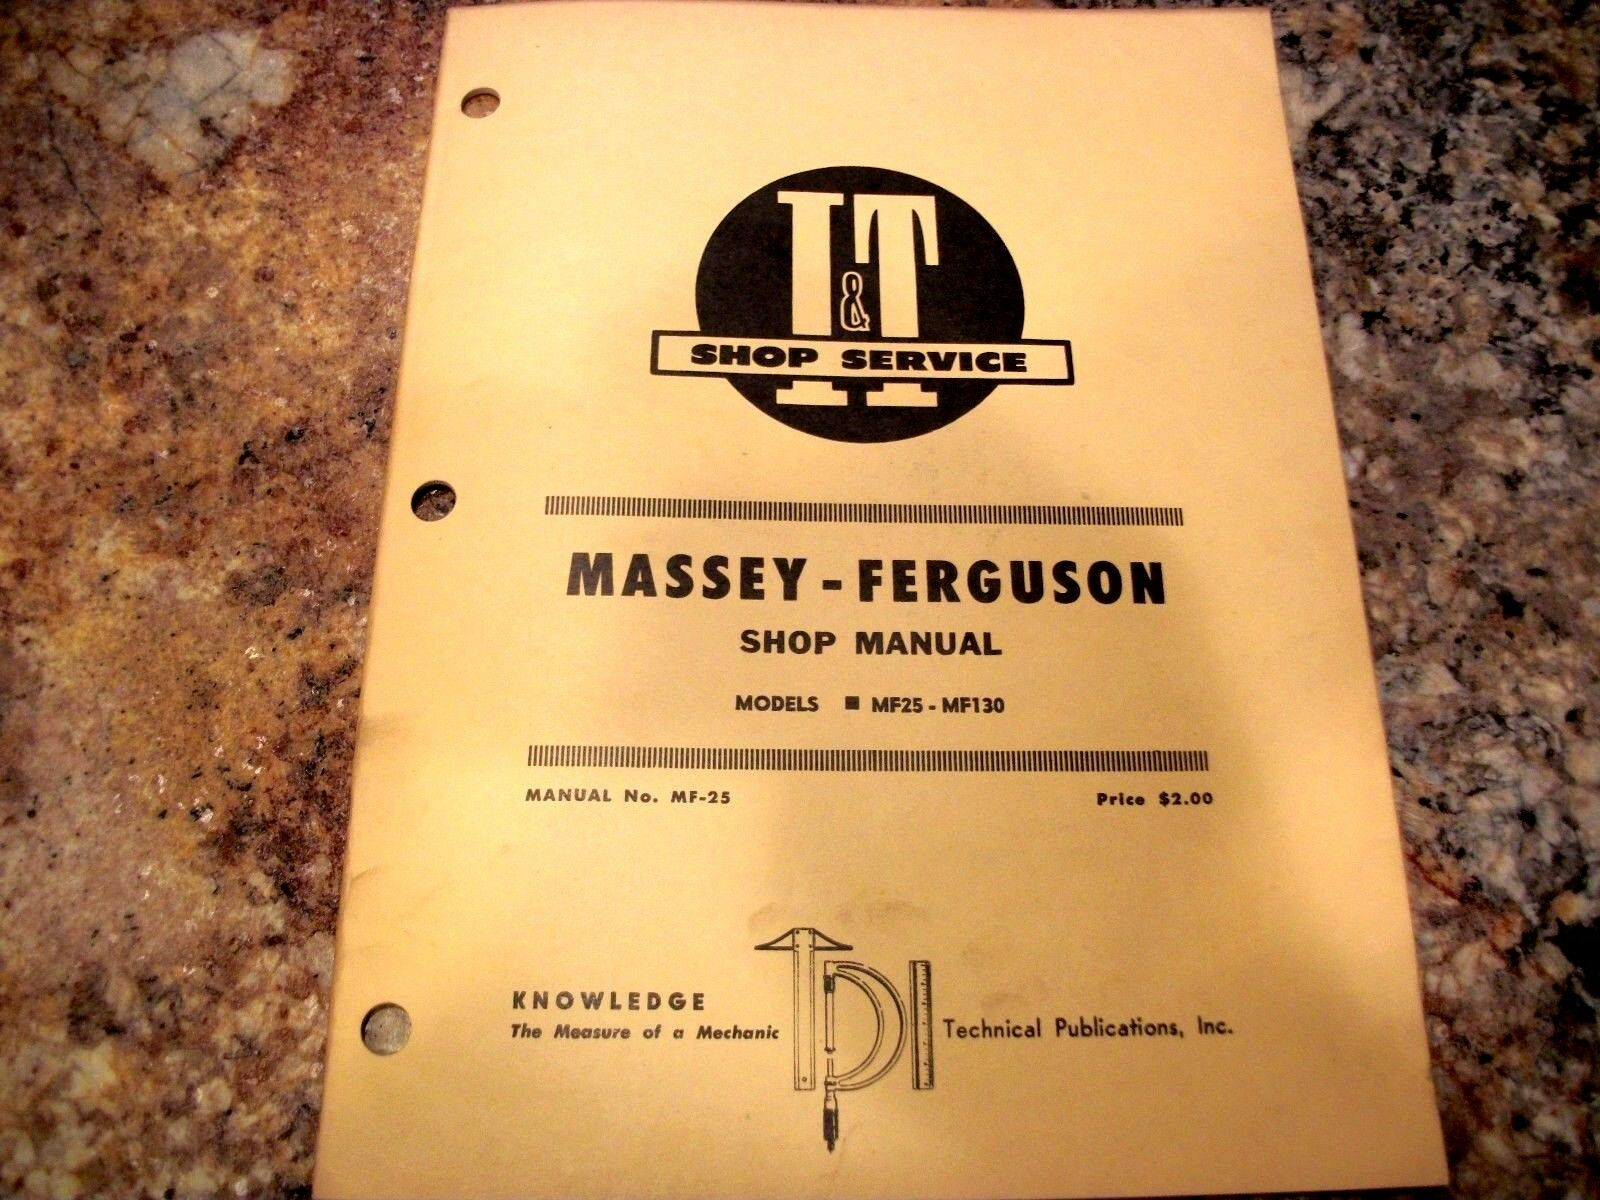 Massey Ferguson Mf25 Mf130 Tractor I & T Shop Service Manual 1 of 4Only 1  available ...